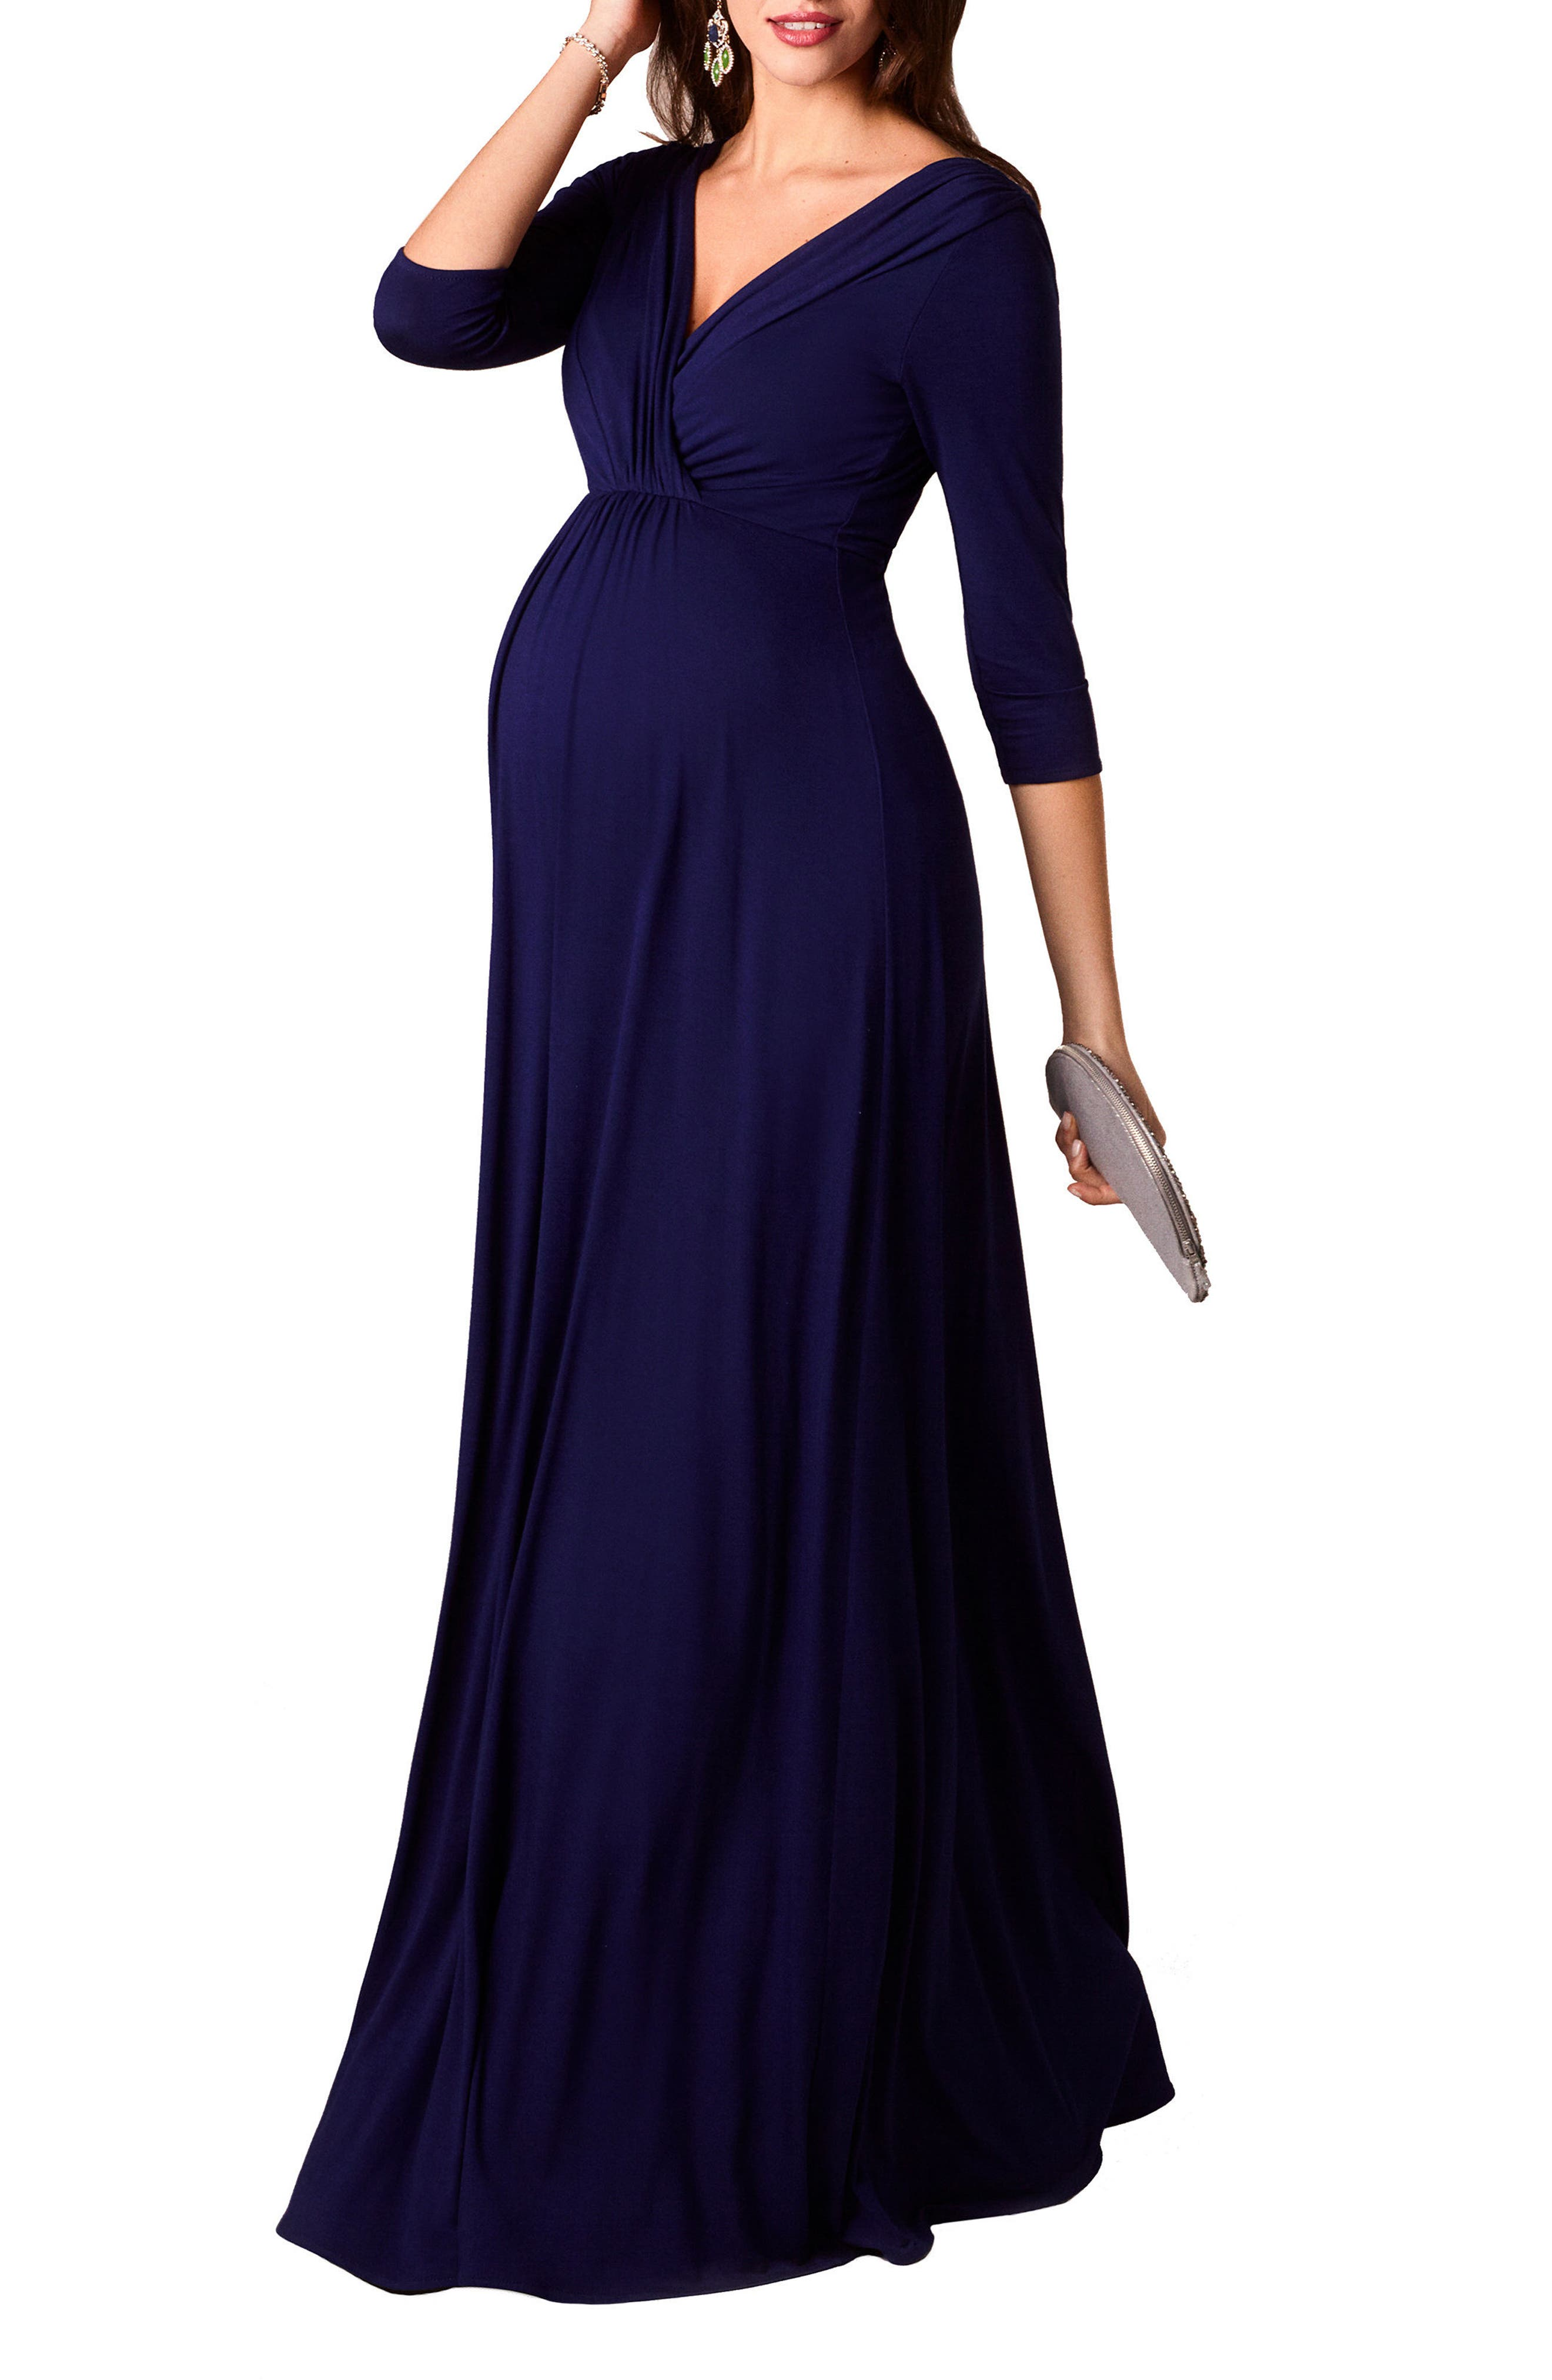 Willow Maternity Gown,                             Main thumbnail 1, color,                             ECLIPSE BLUE